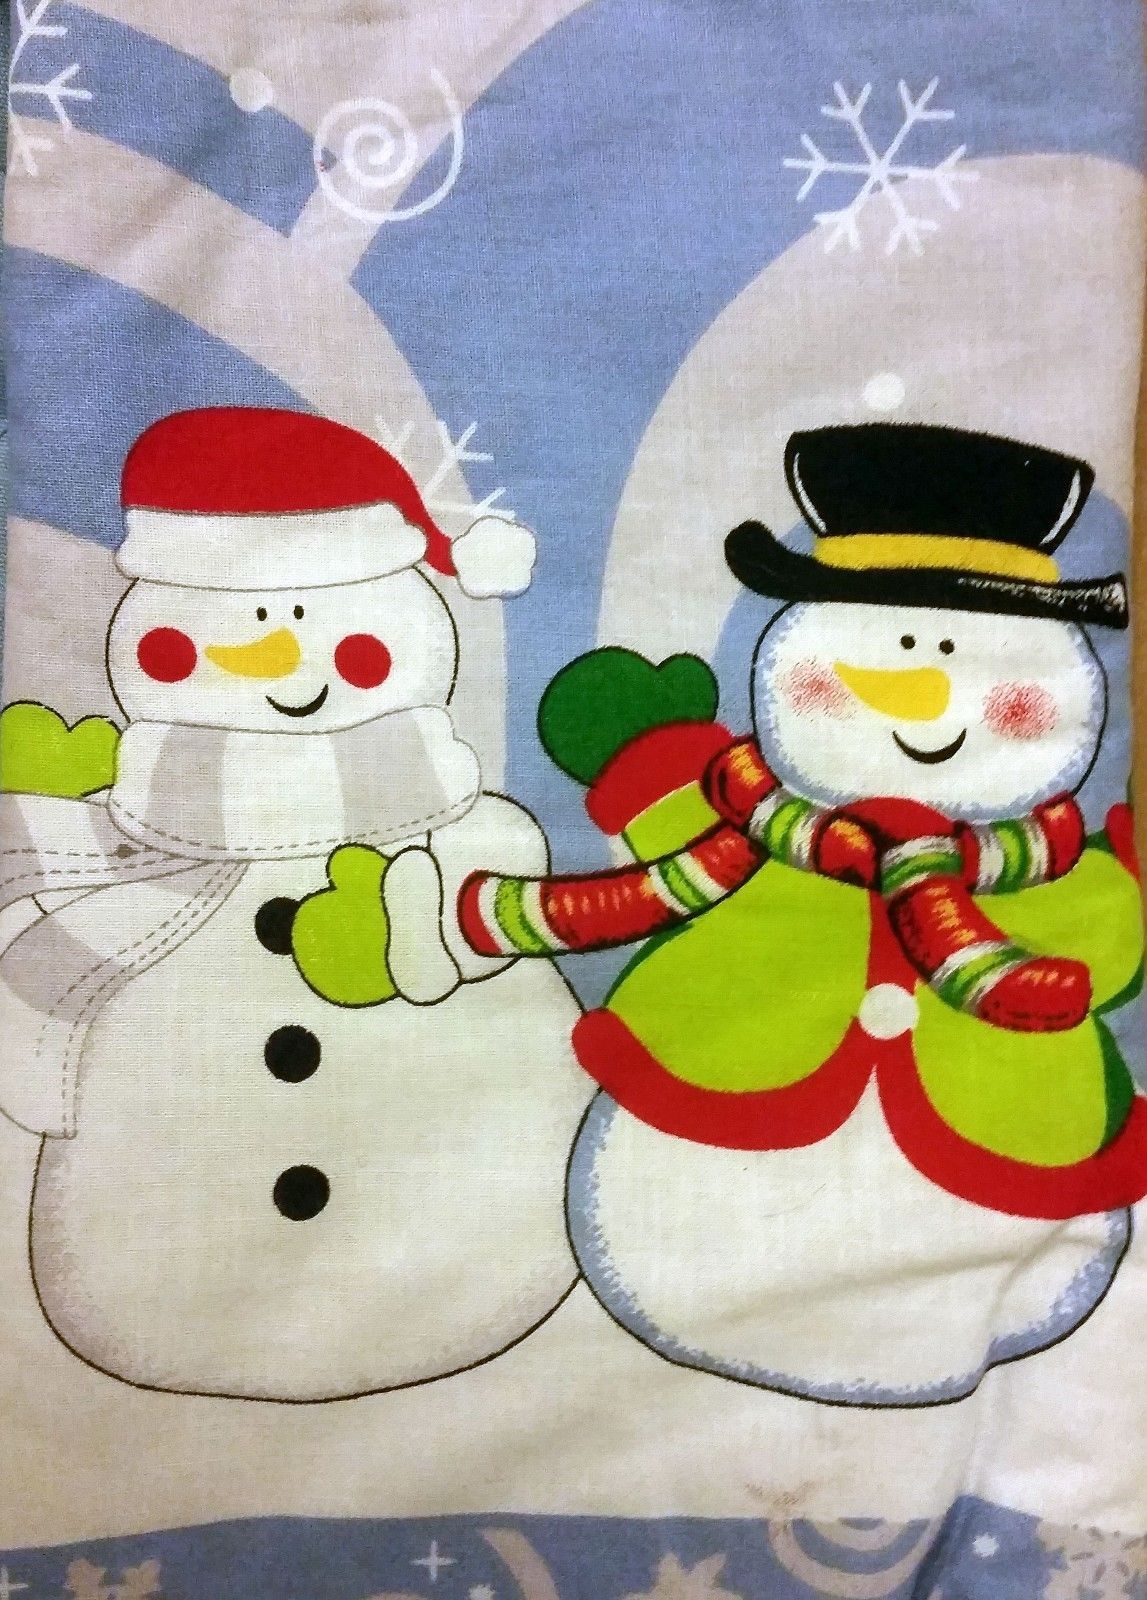 "Oversized Printed Kitchen 14.5"" Oven Mitt, WINTER, CHRISTMAS, 2 SNOWMEN"